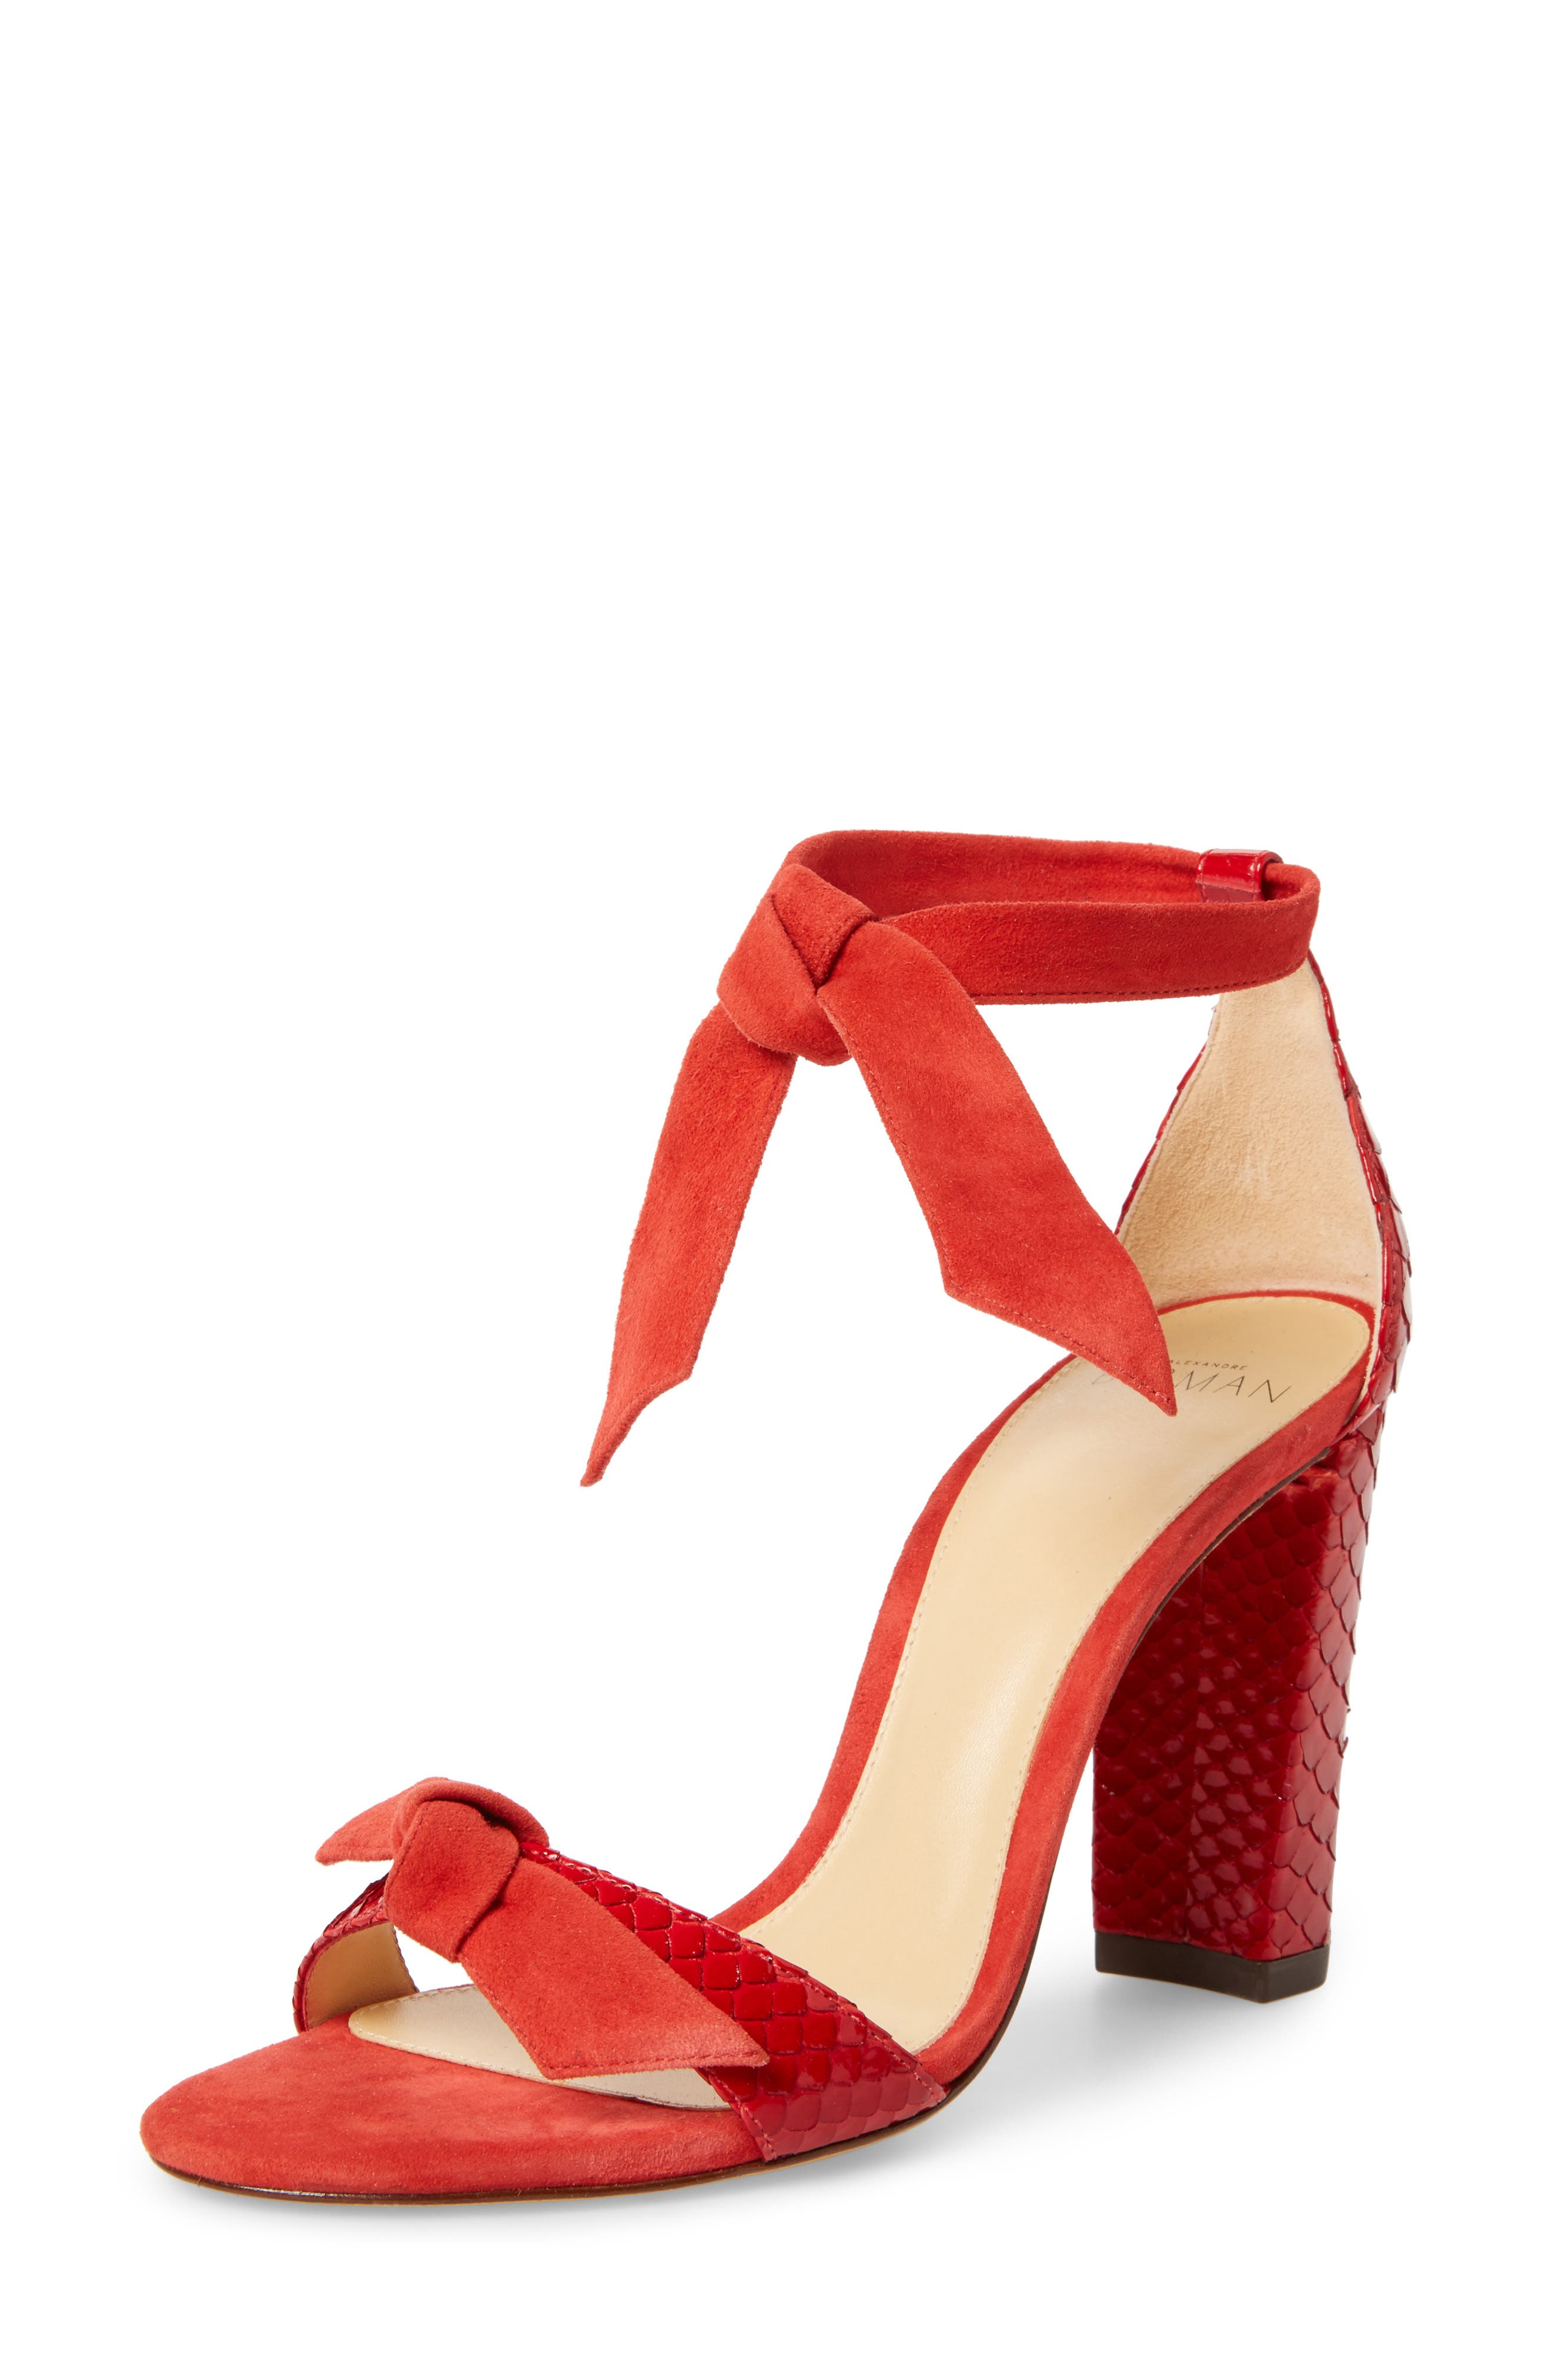 Clarita Genuine Python Ankle Tie Sandal,                         Main,                         color, Flame Red